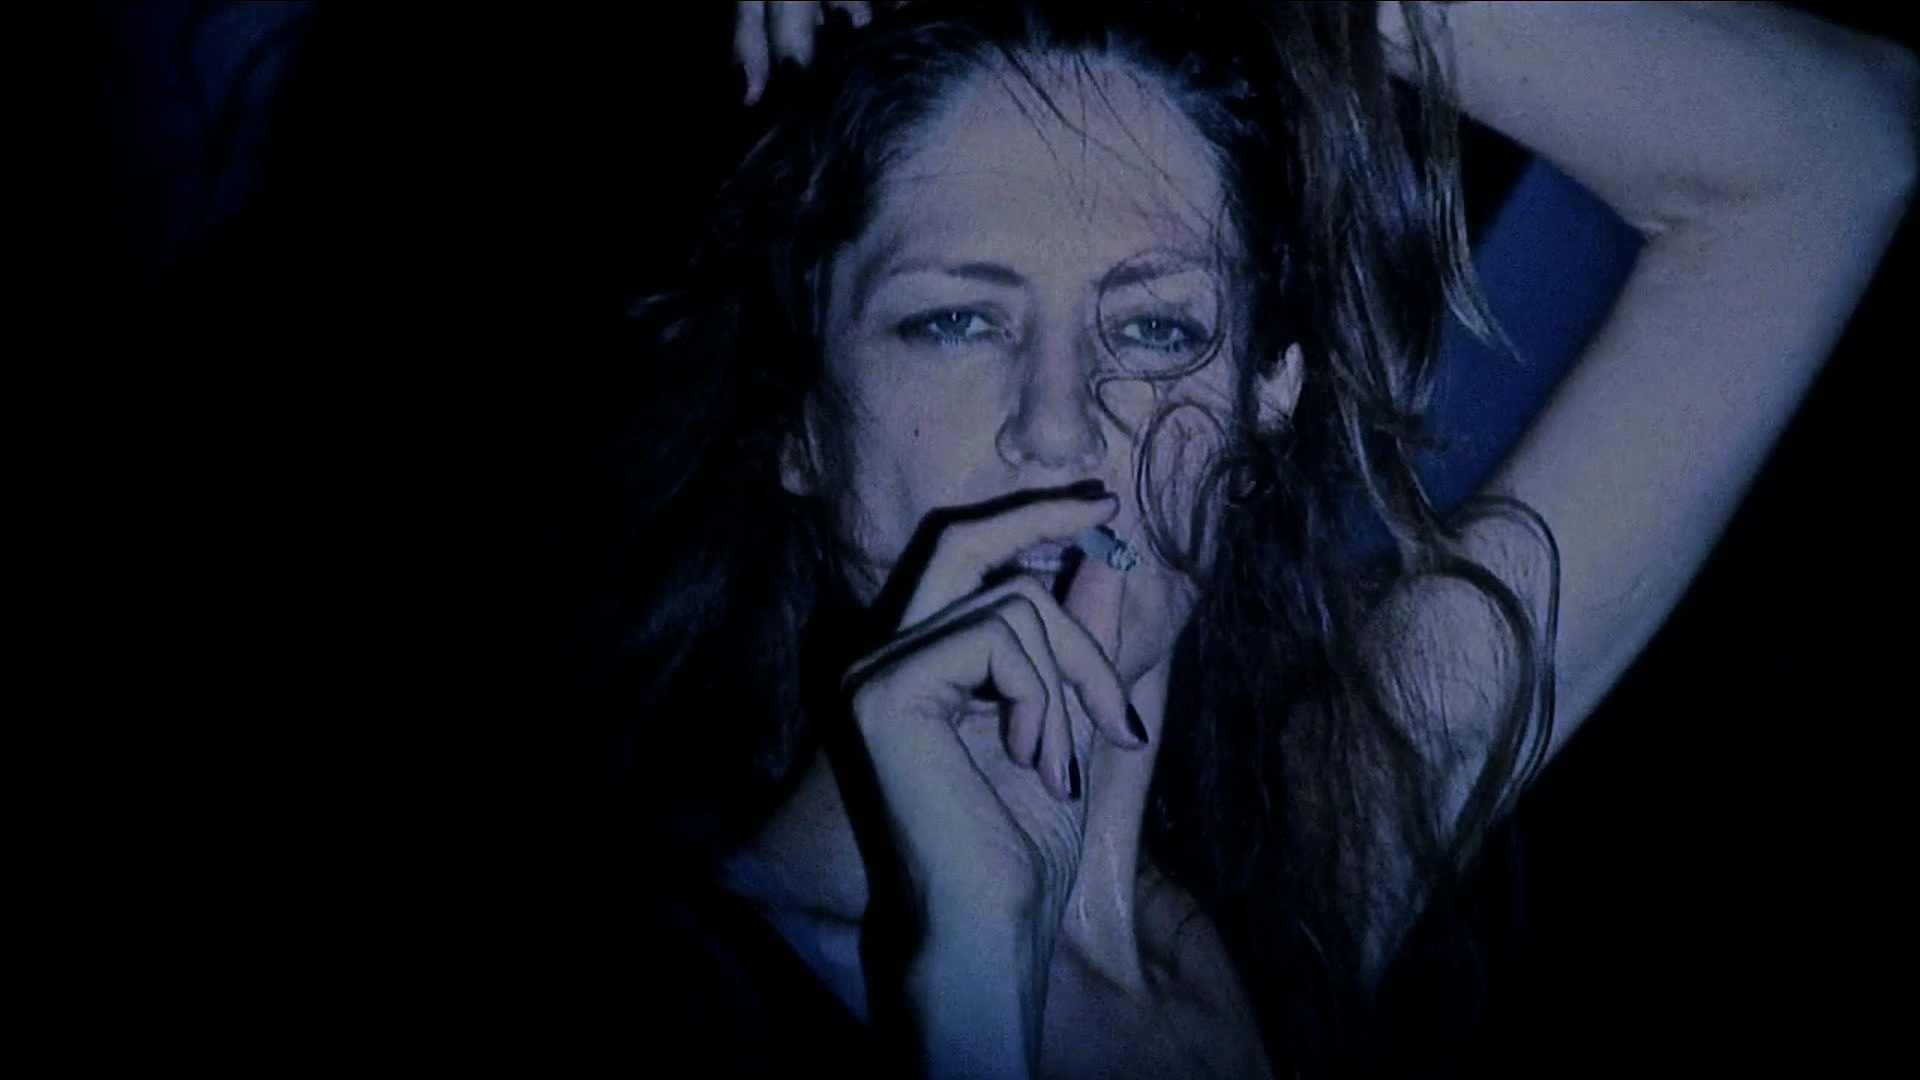 Shot of a woman smoking a cigarette. Her hair is swept across half of her face.